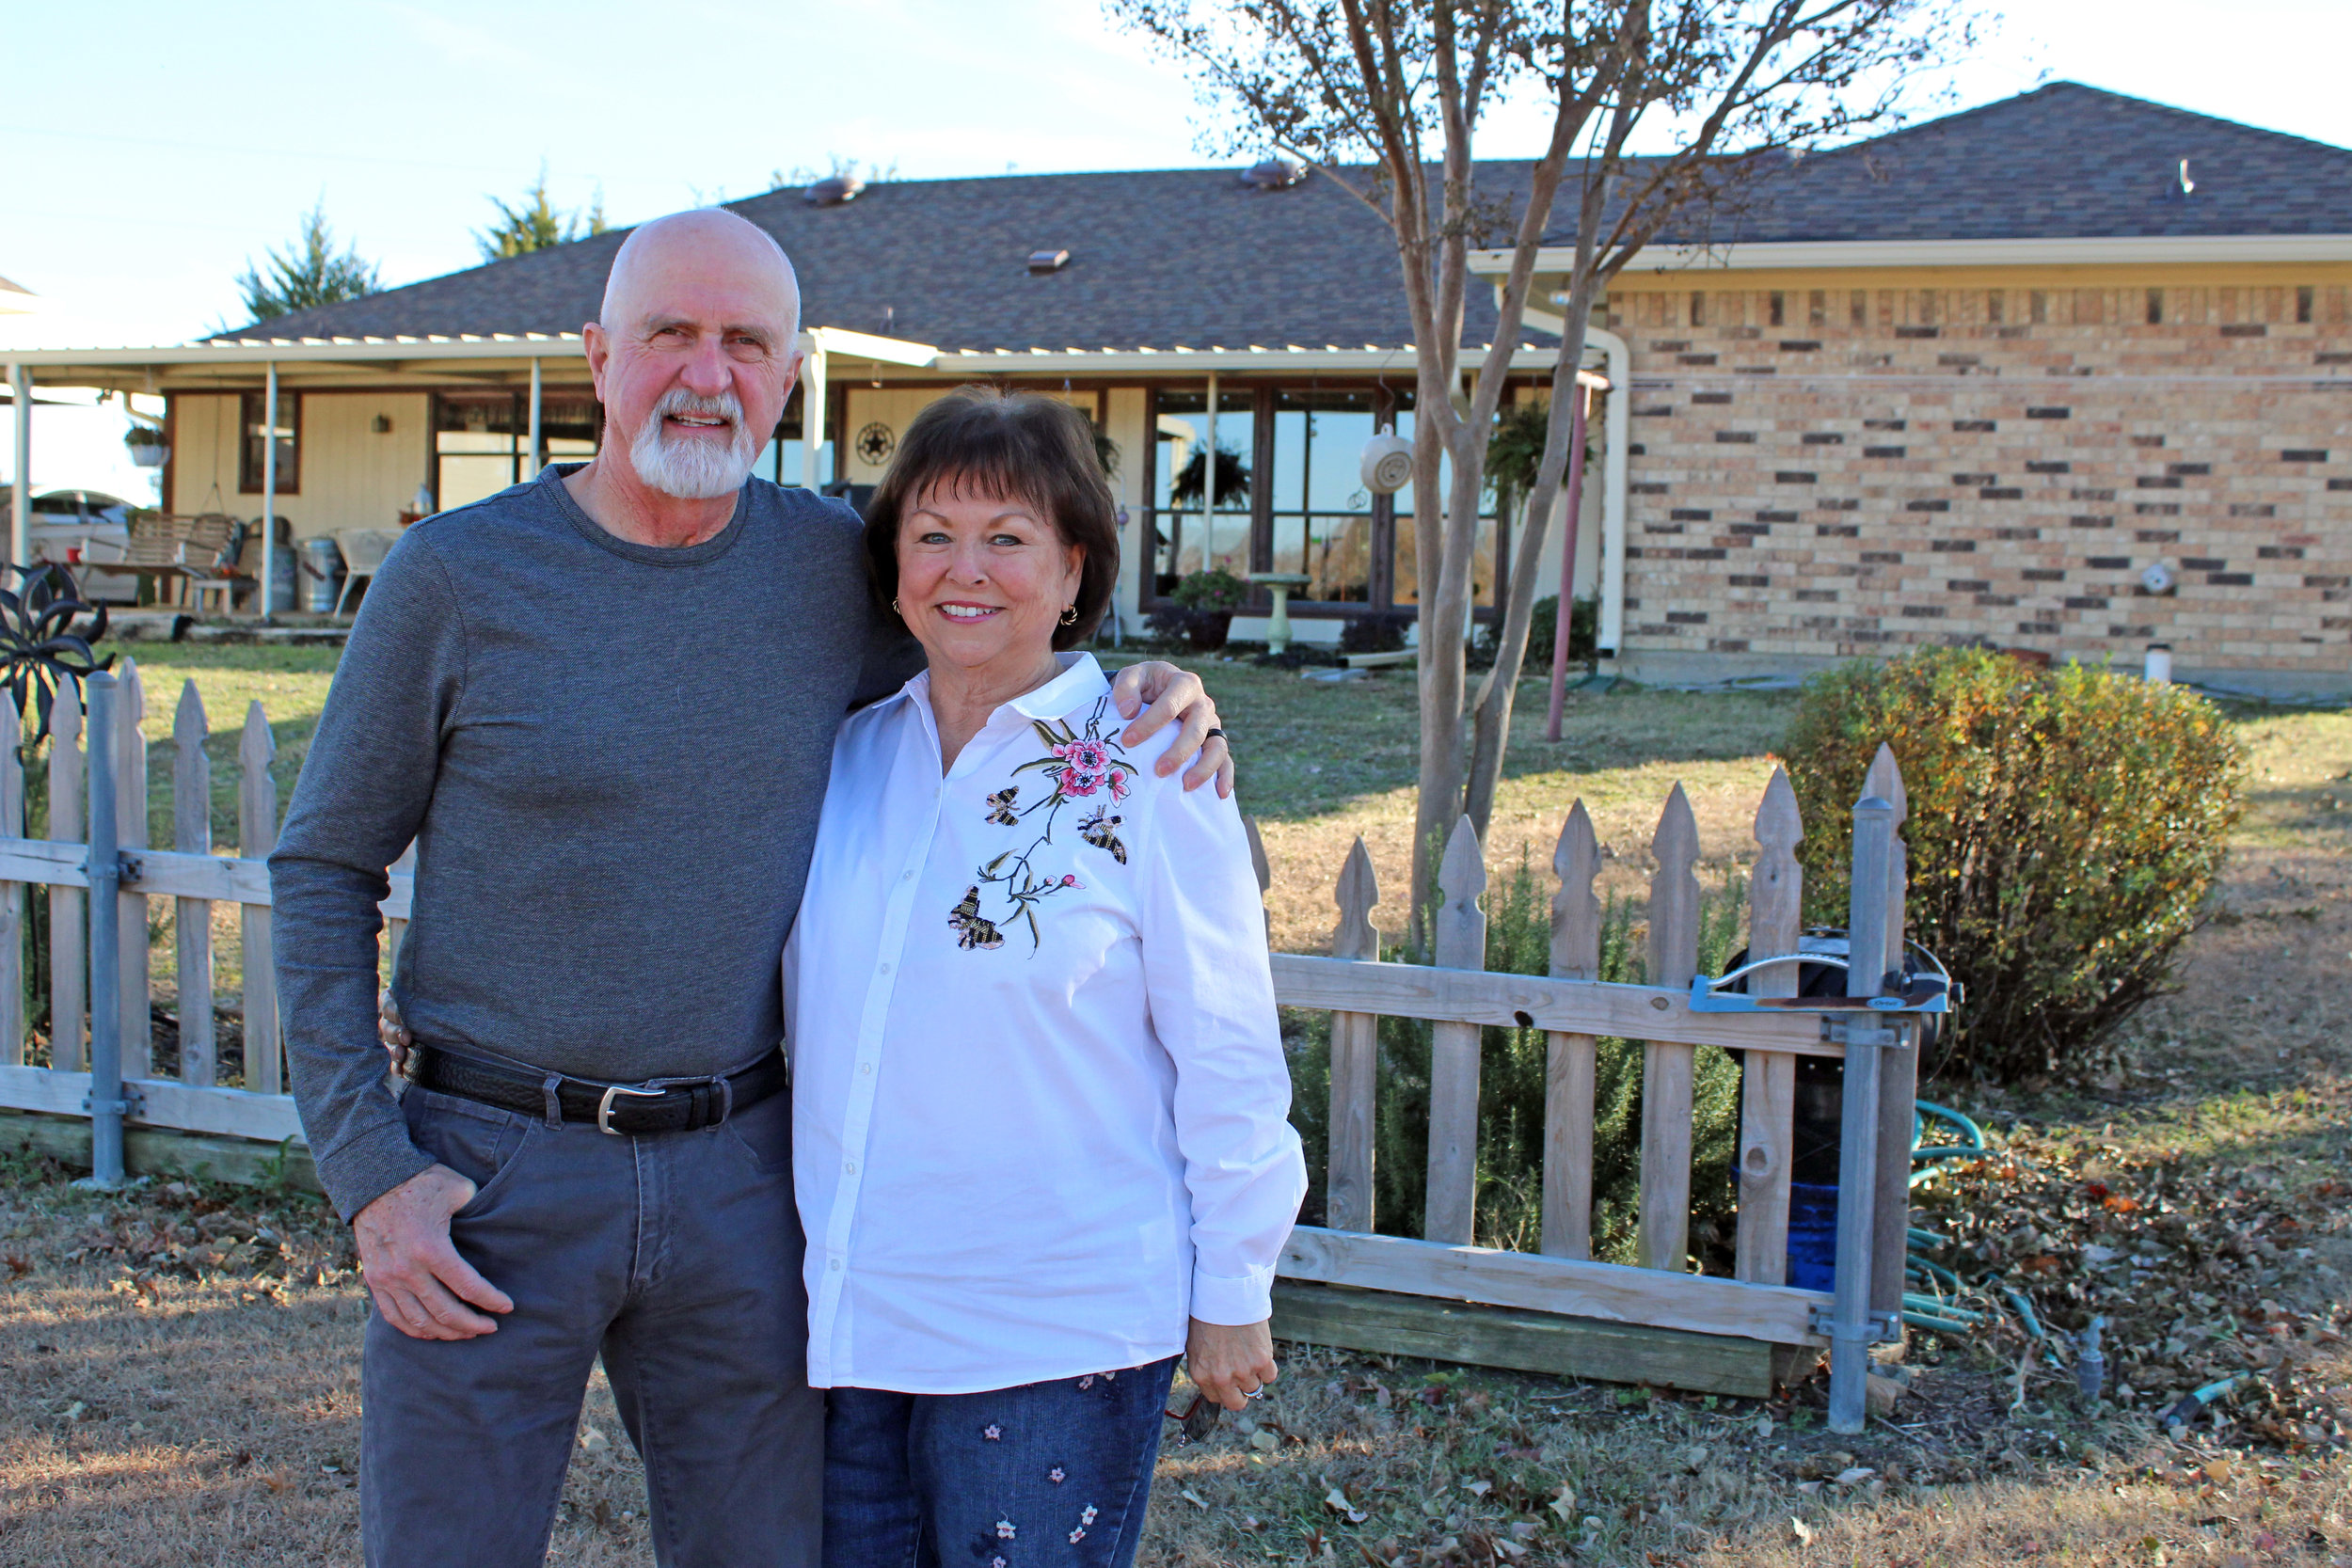 When Tuck was 18 years old, he told Vickie he would build their house and everything in it. He built their home in Murphy in 1984.